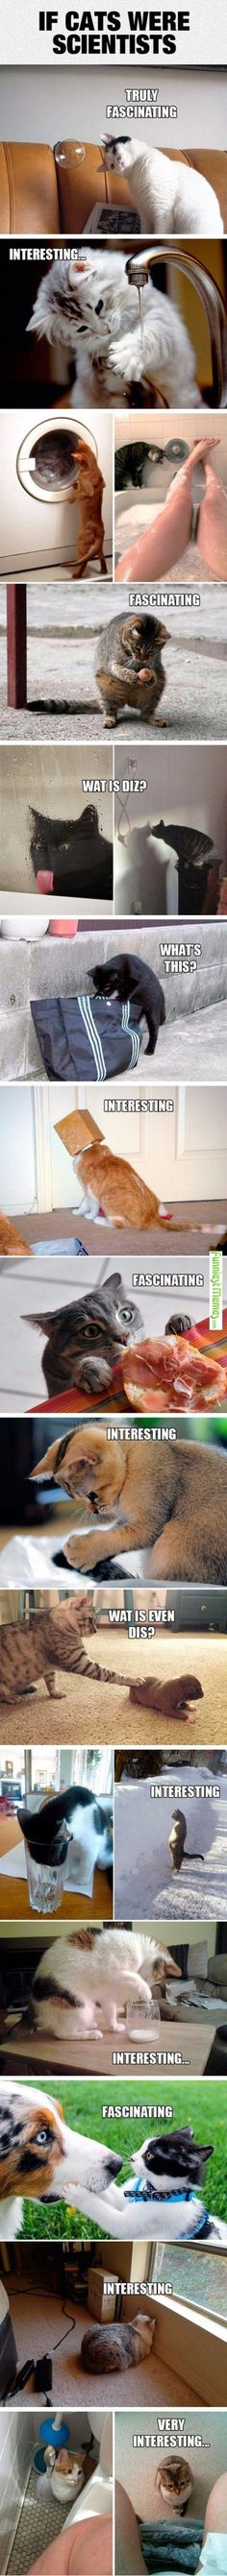 Funny Cats Investigating